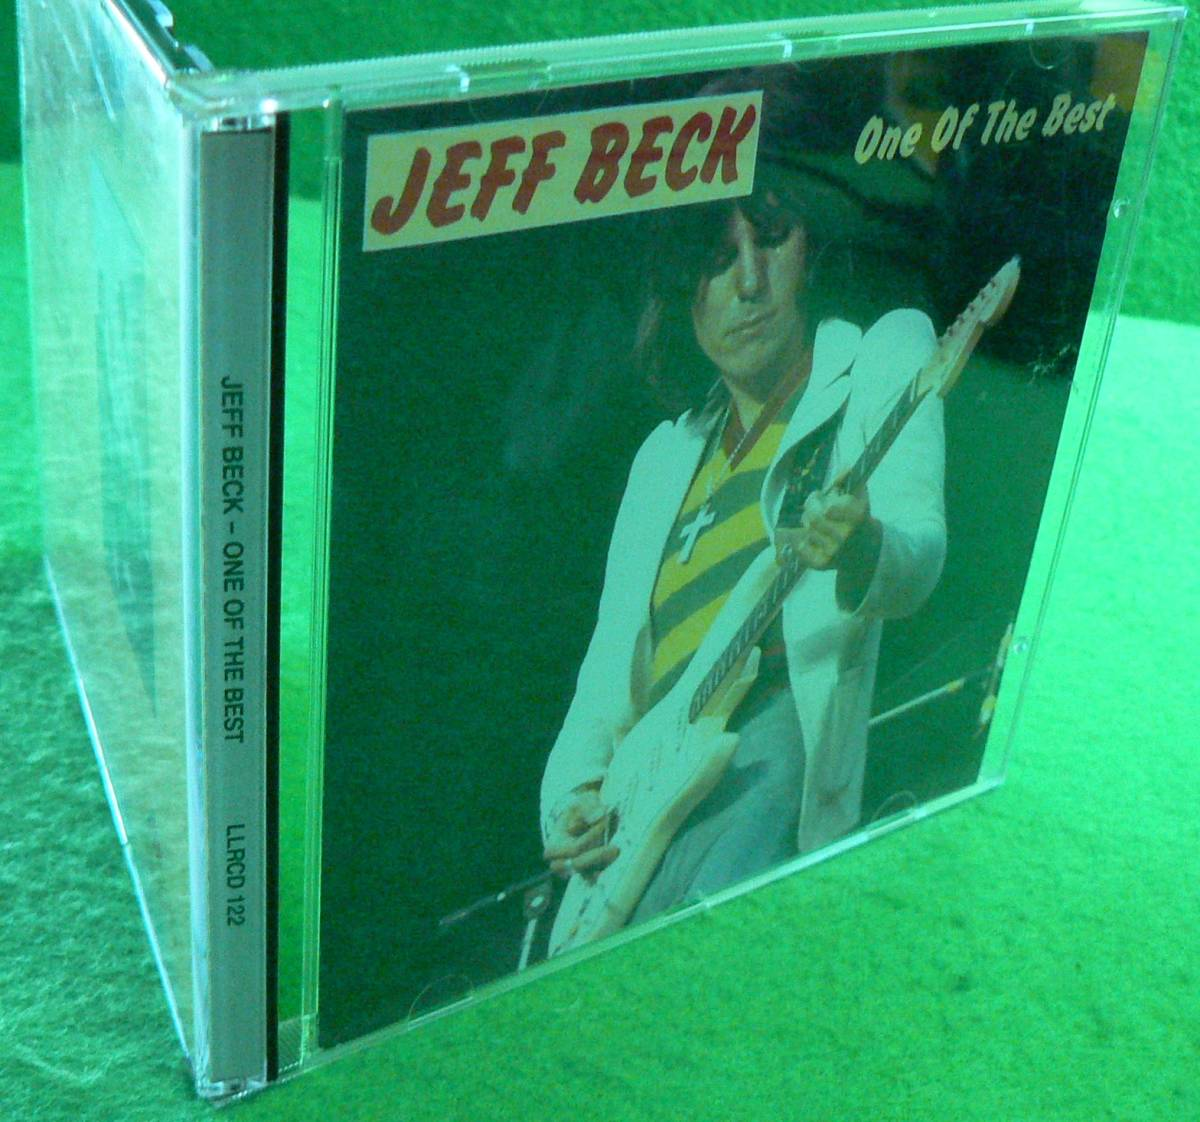 ★CD★ジェフ・ベック★Jeff Beck★One Of The Best★エリック・クラプトン★1971★